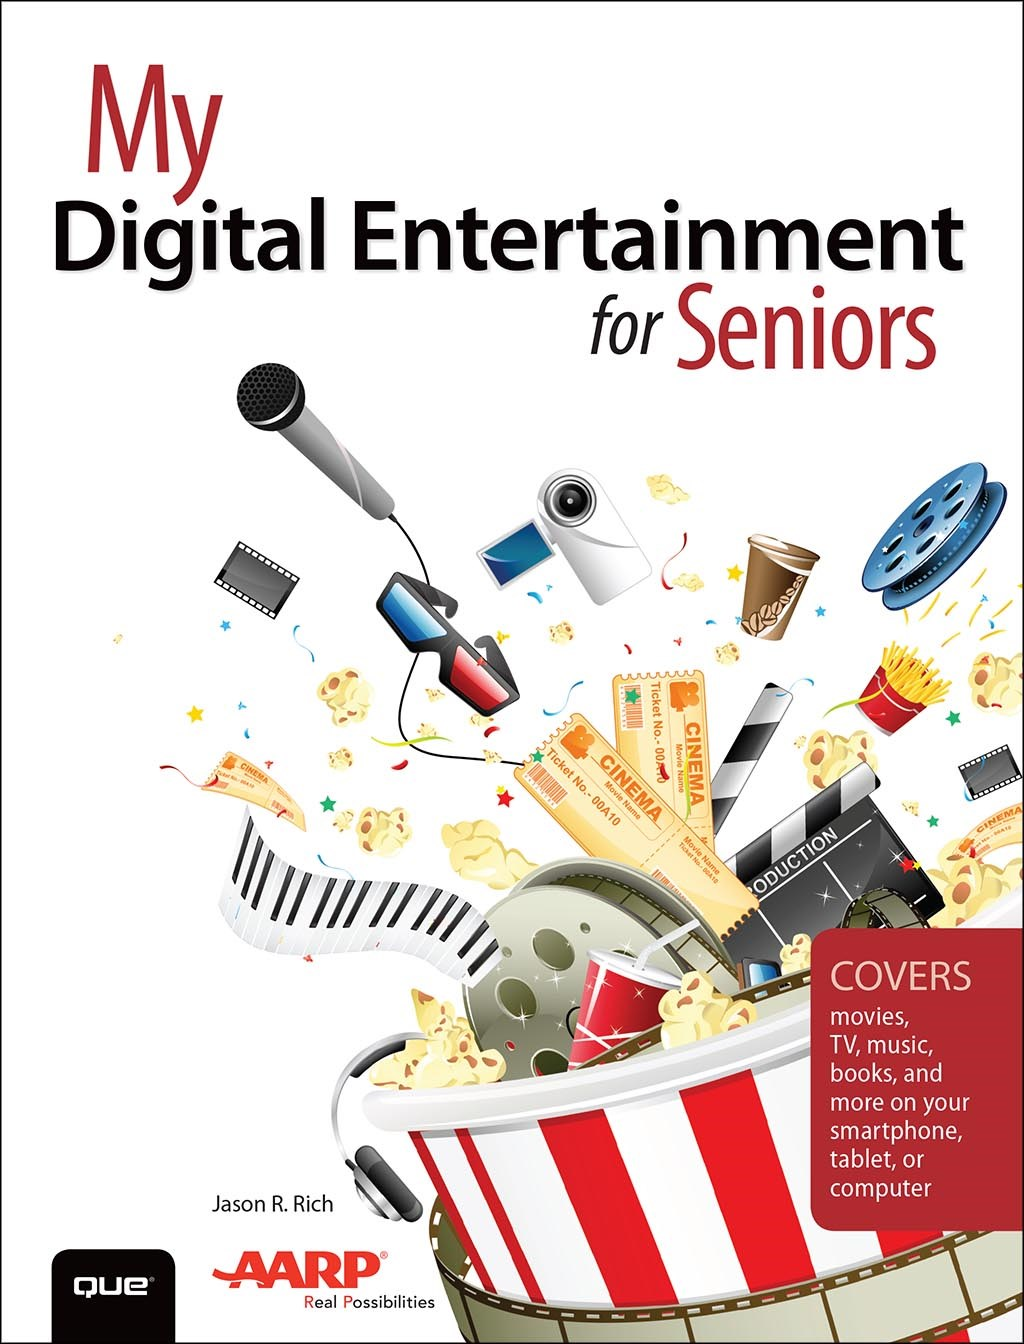 My Digital Entertainment for Seniors (Covers movies, TV, music, books and more on your smartphone, tablet, or computer)